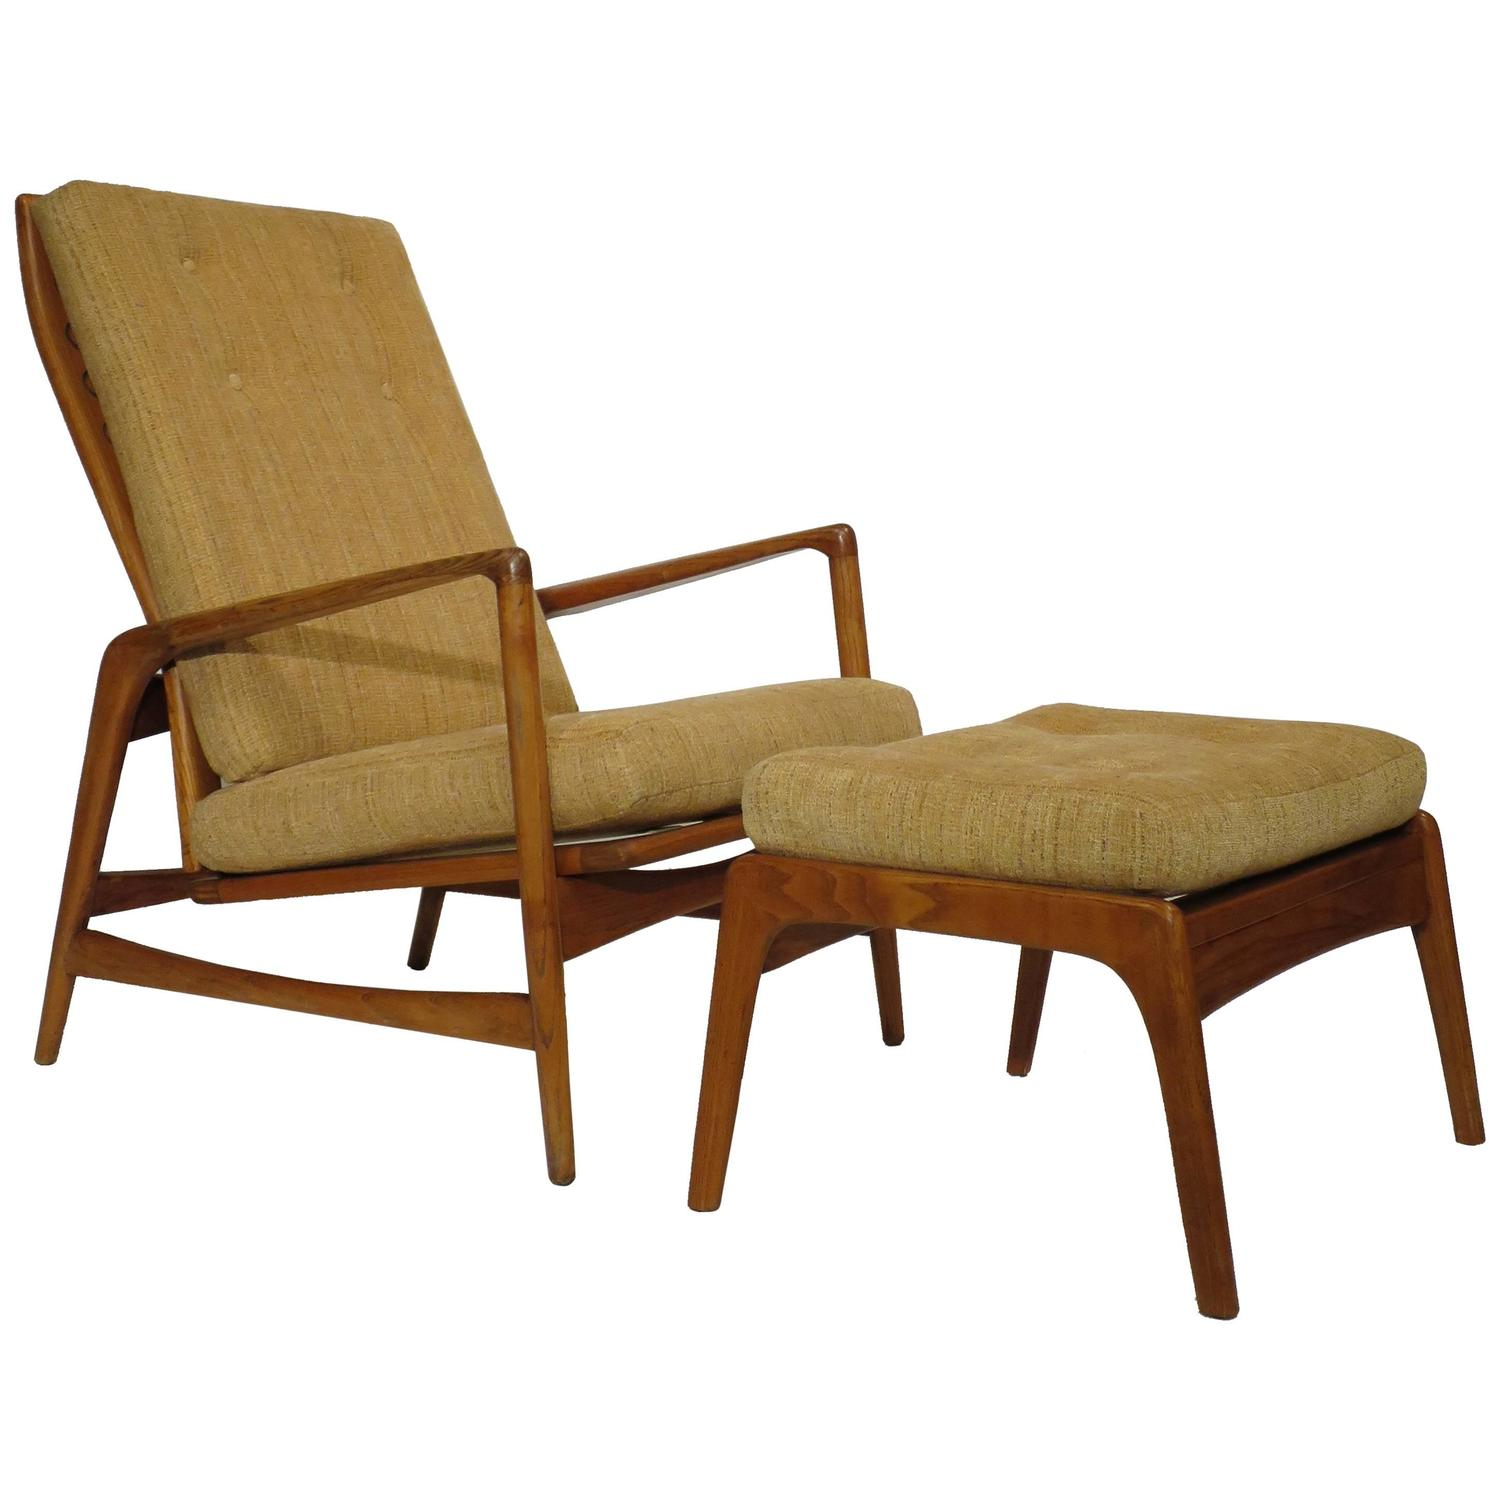 Ib Kofod Larsen Reclining Lounge Chair with Ottoman at 1stdibs